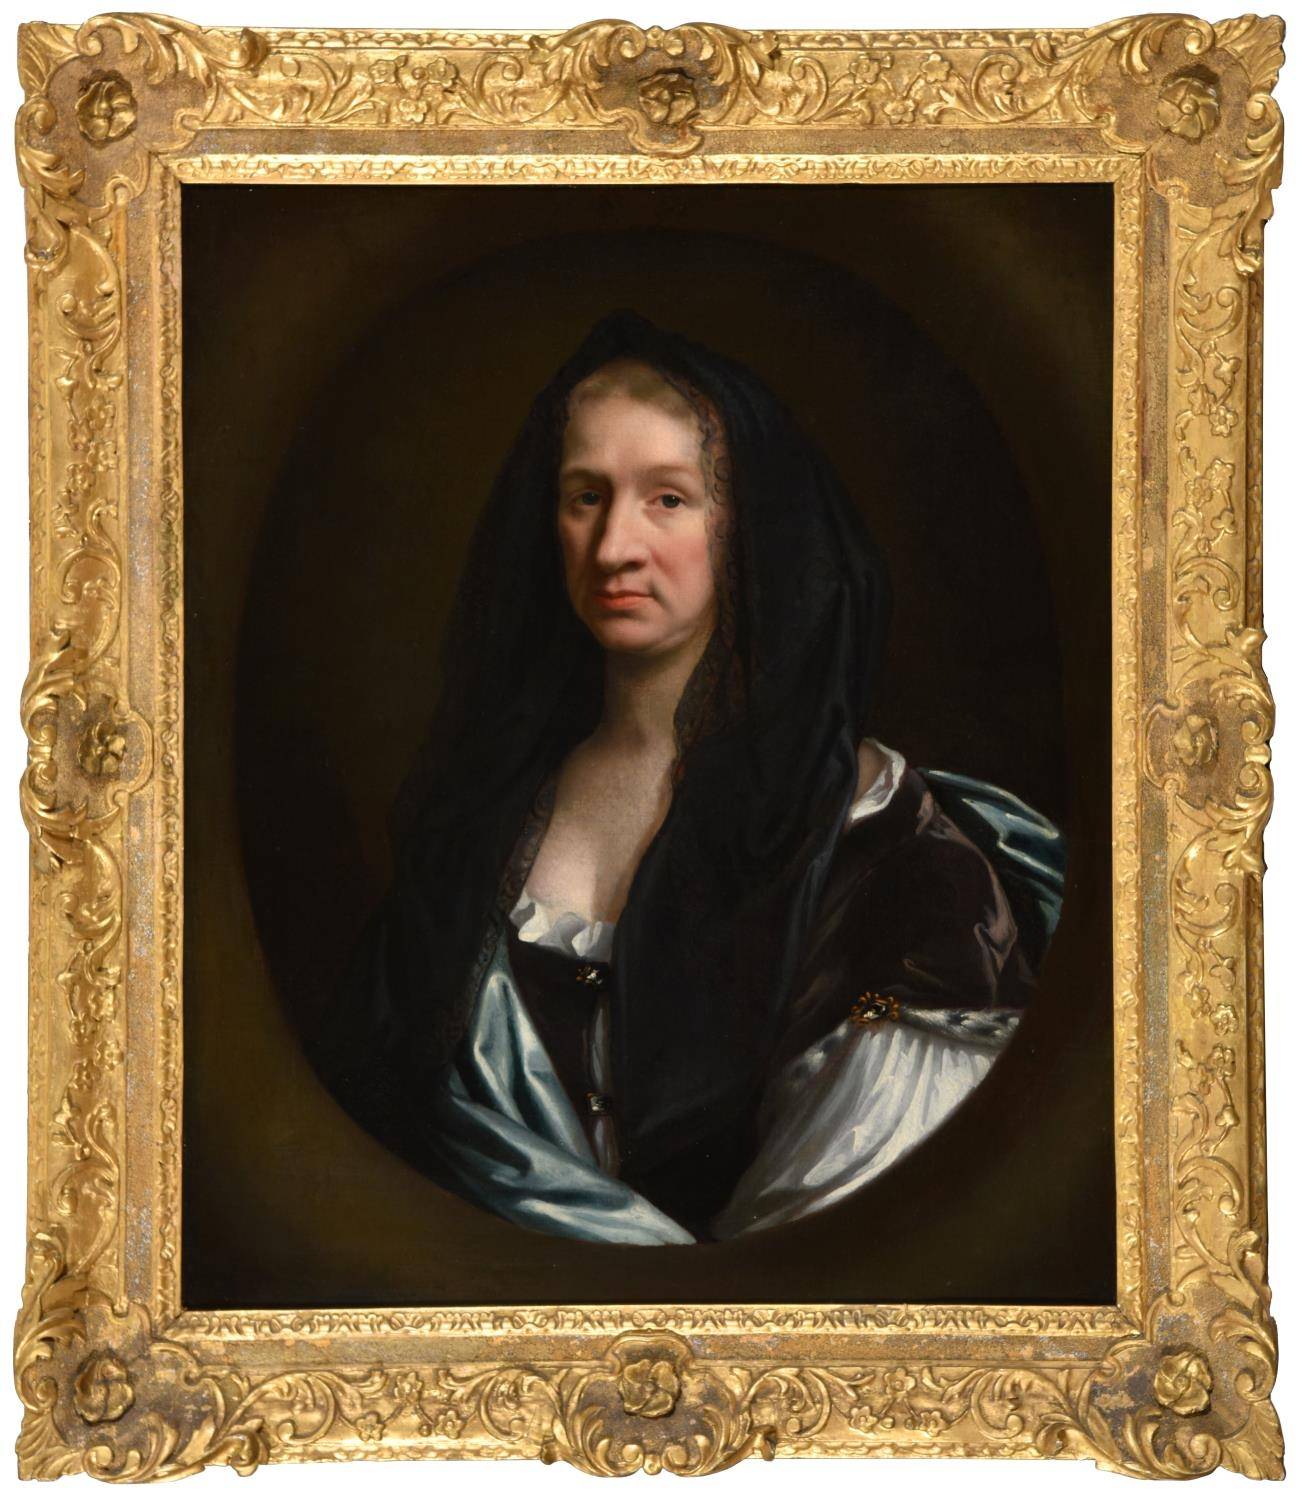 English School, c1690 - Portrait of Eusanna Crawley-Boevey, bust length in a white dress with blue - Image 2 of 3